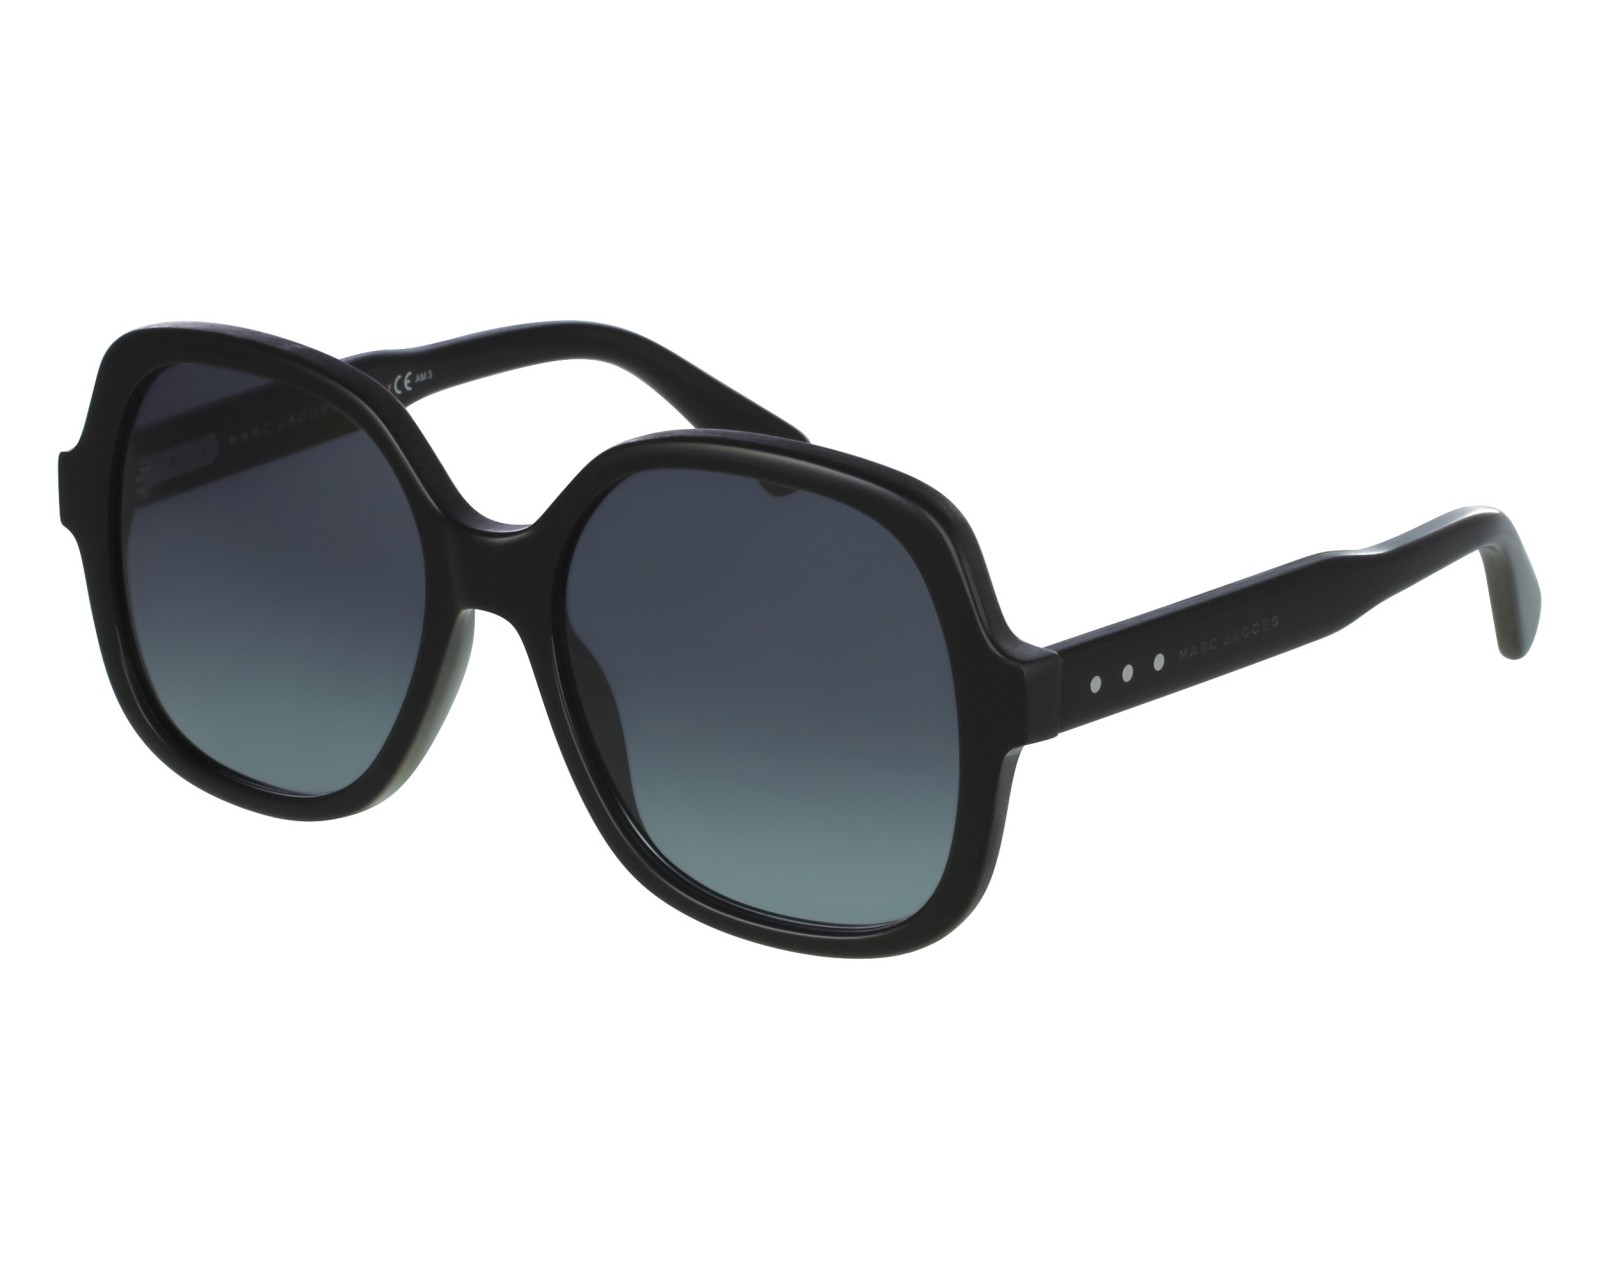 Marc Jacobs Mj 589/s 807 (hd) C8v2p